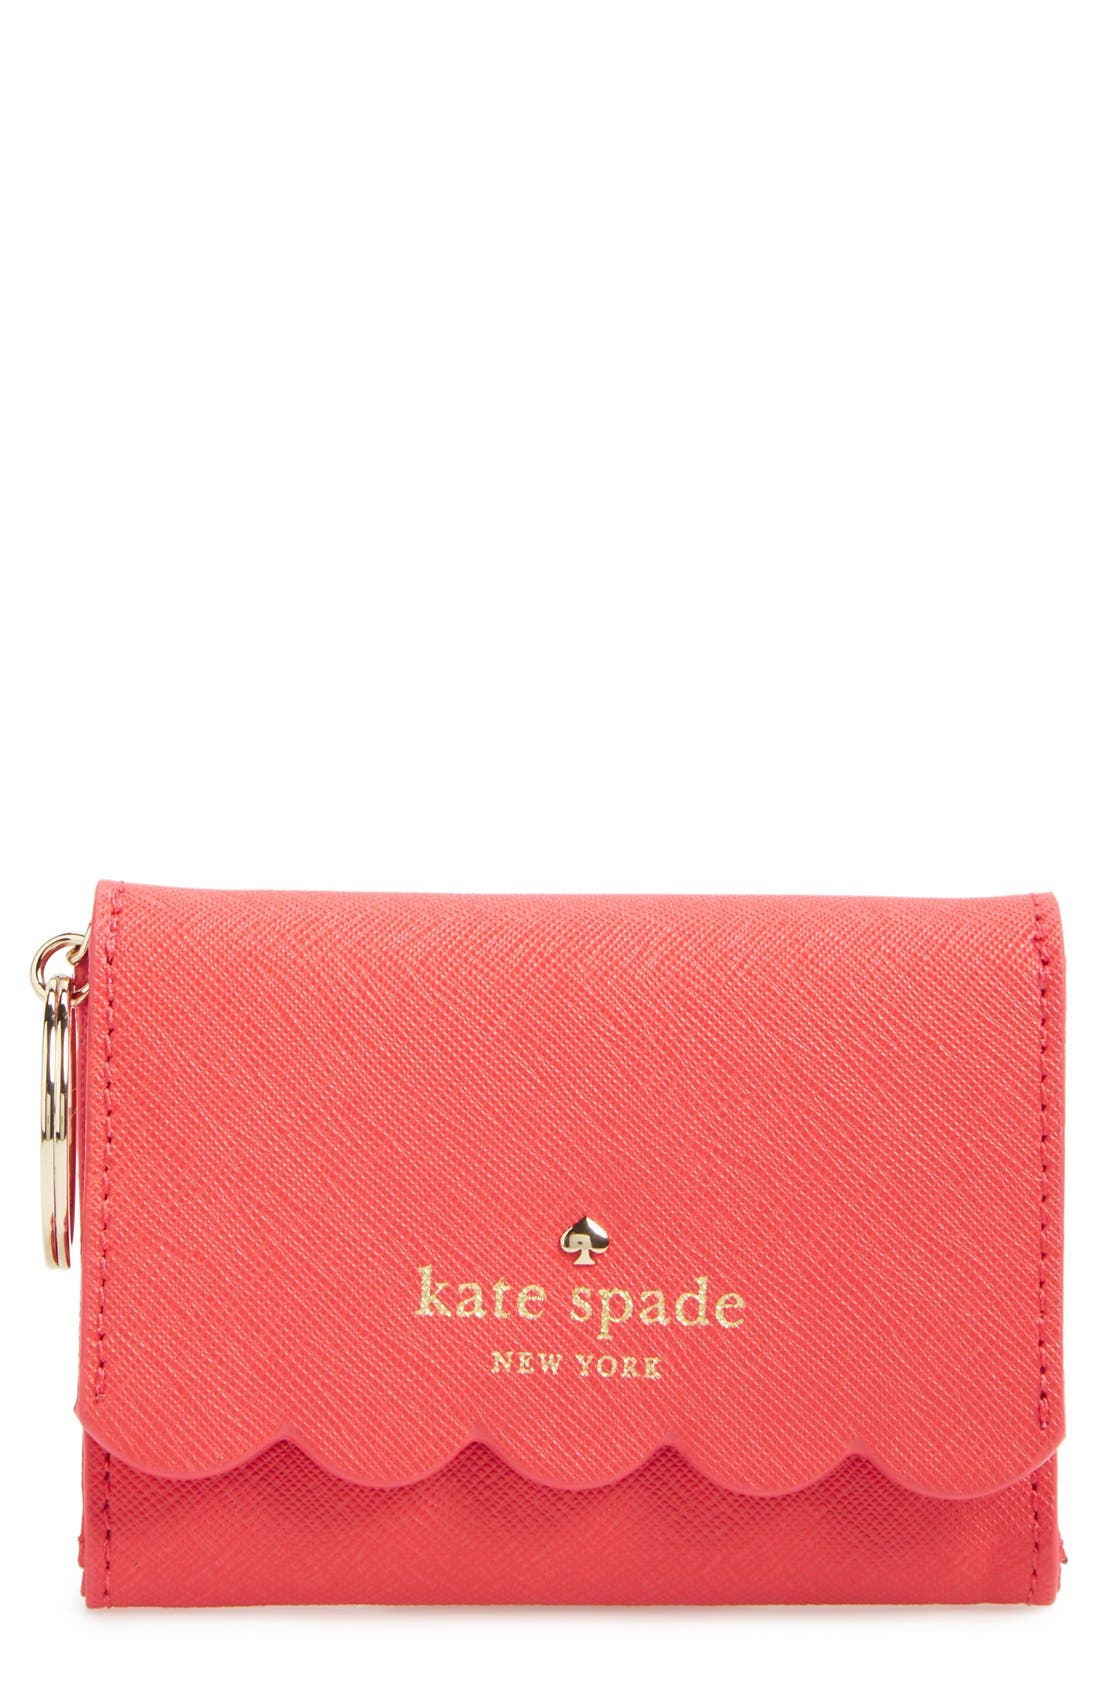 Alternate Image 1 Selected - kate spade new york 'lily avenue - darla' leather wallet